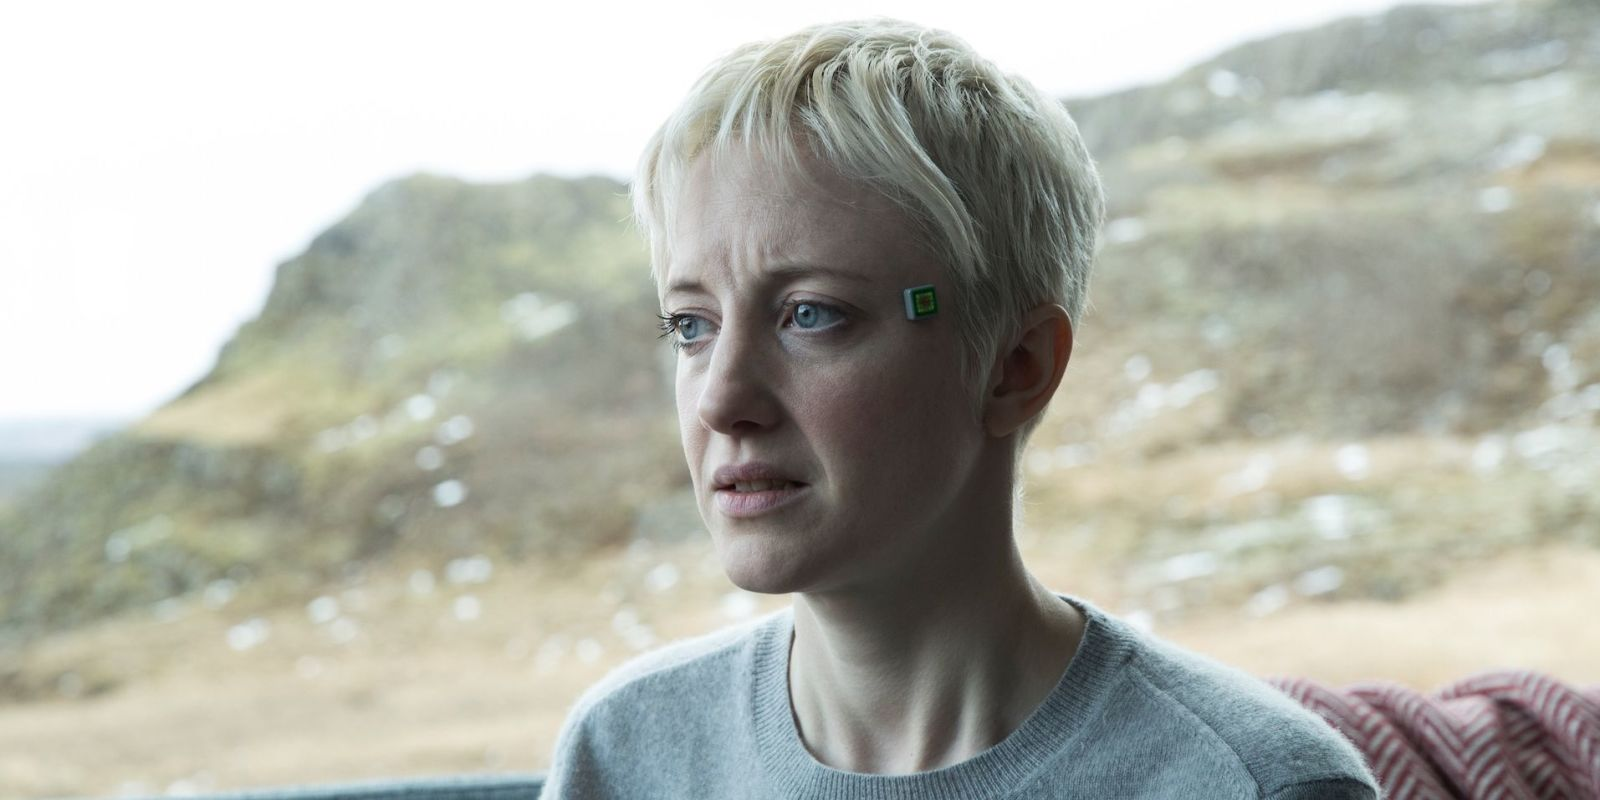 Black Mirror easter egg links several episodes – Charlie Brooker explains all